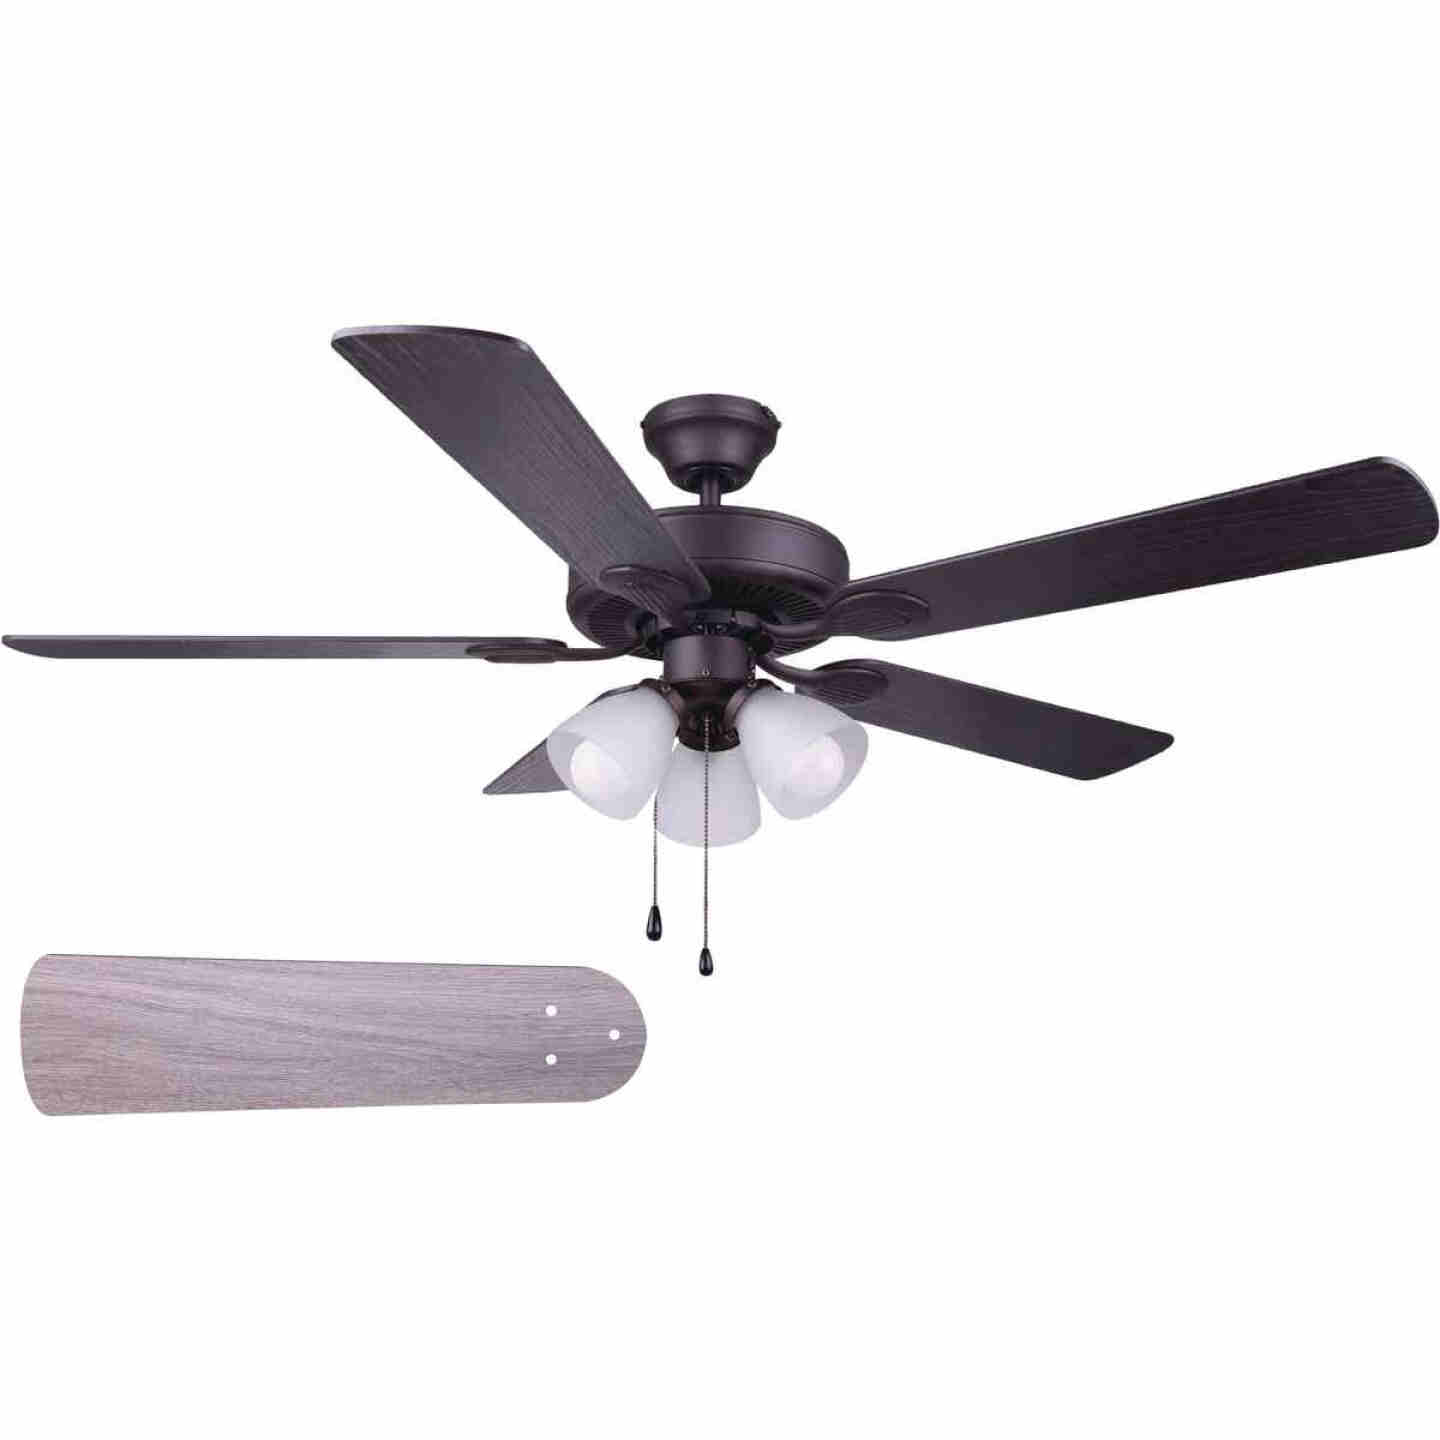 Home Impressions Villa 52 In. Oil Rubbed Bronze Ceiling Fan with Light Kit Image 1